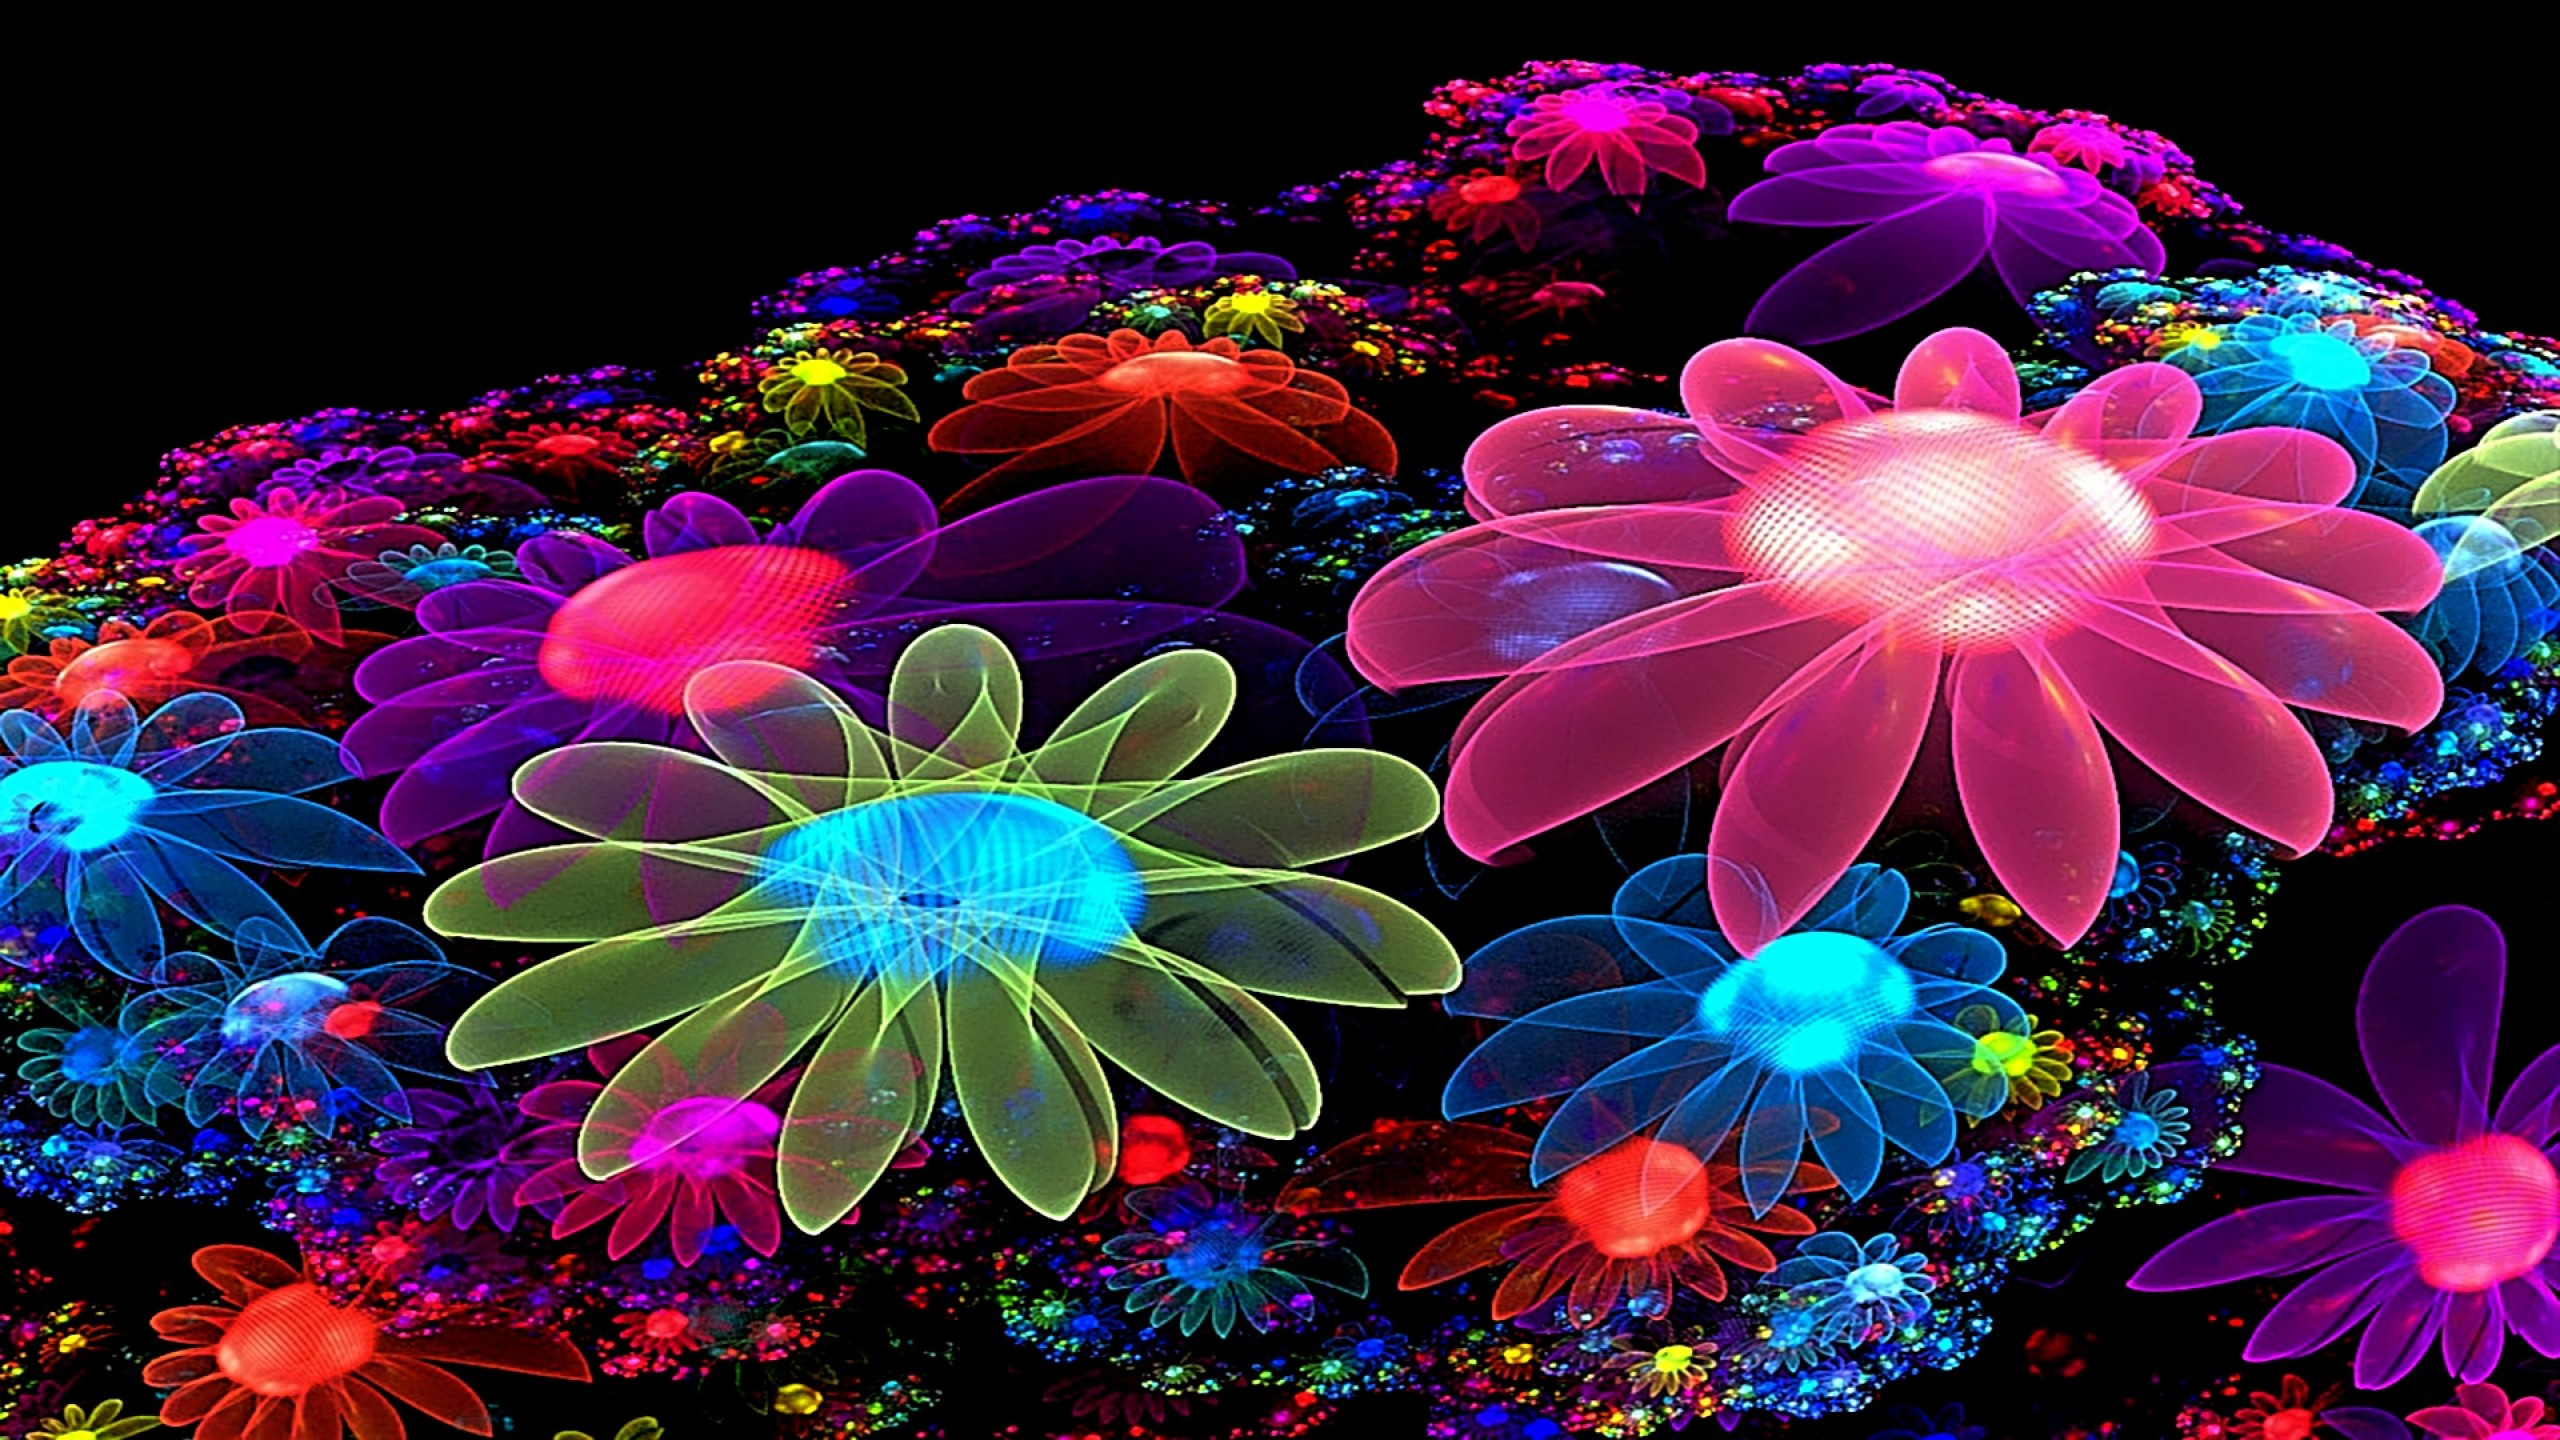 Colorful Abstract Flower Glow Hd Wallpaper Wallpaper List 2560x1440